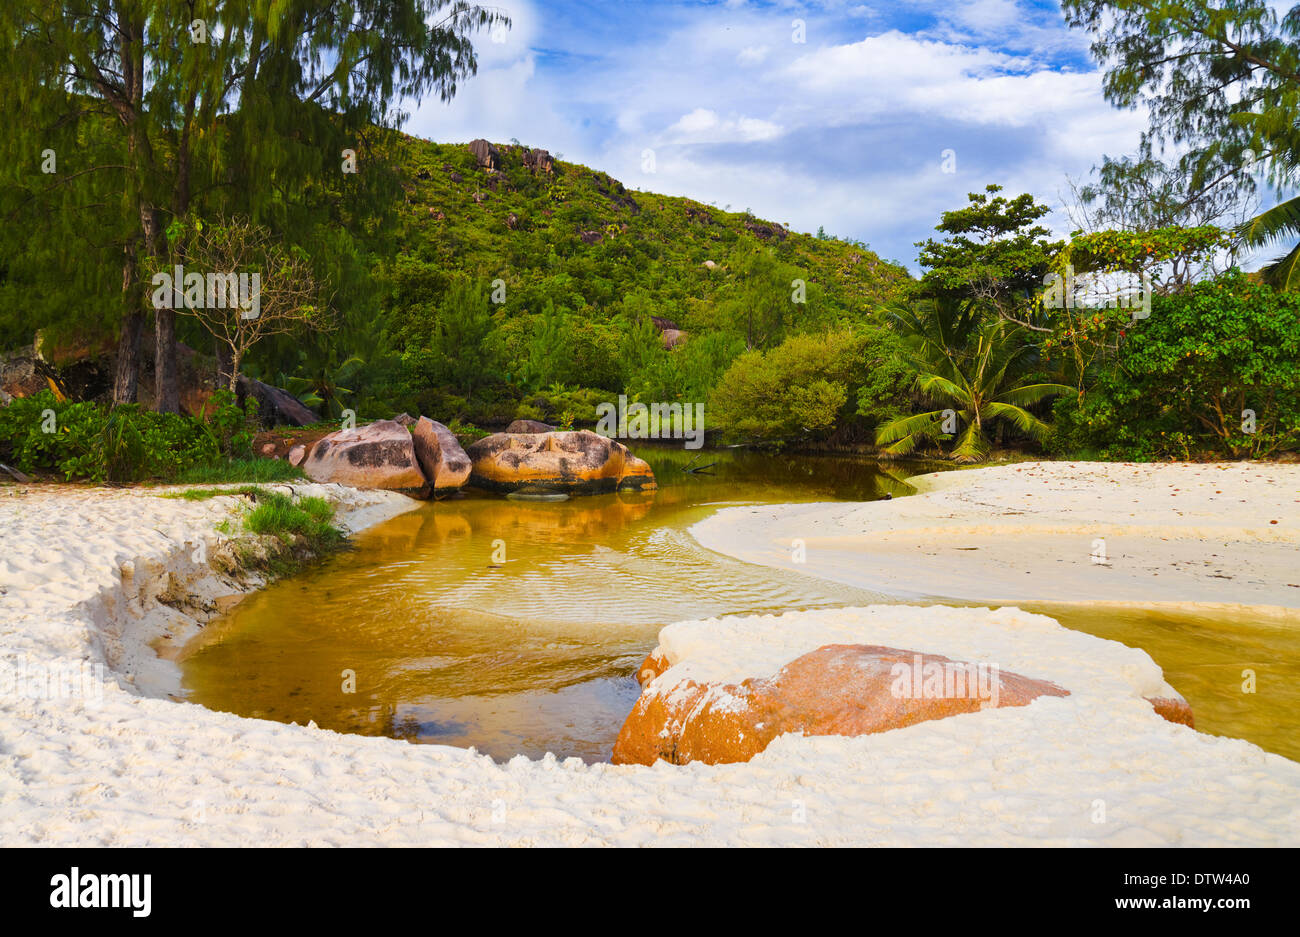 River in jungles at Seychelles - Stock Image